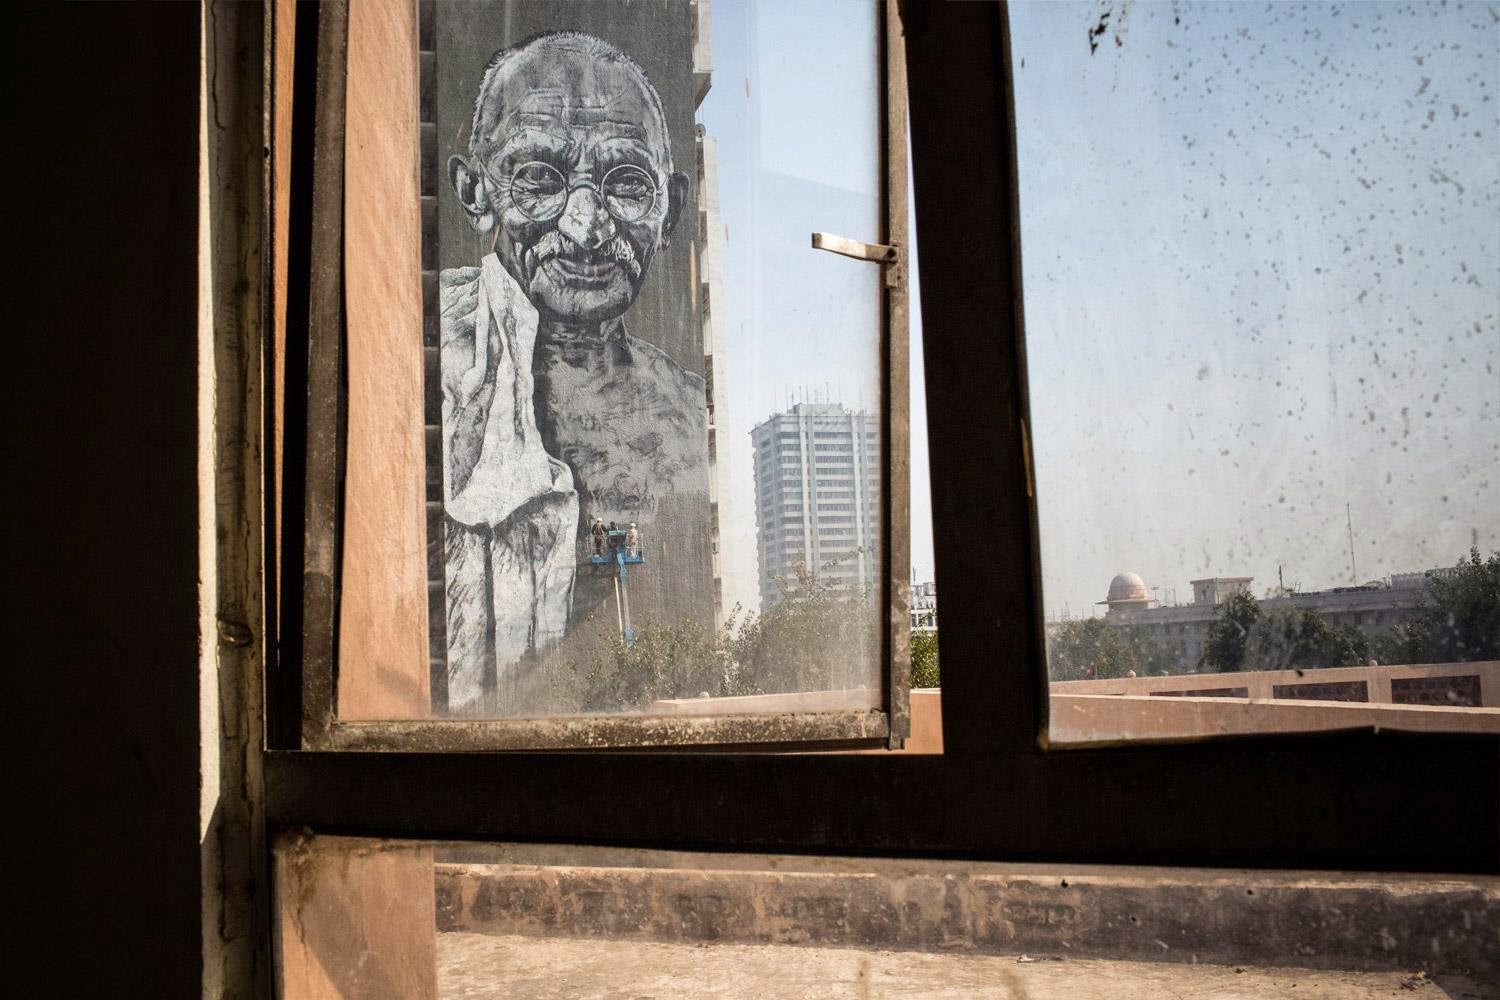 hendrik-ecb-beikirch-gandhi-mural-in-new-delhi-india-02